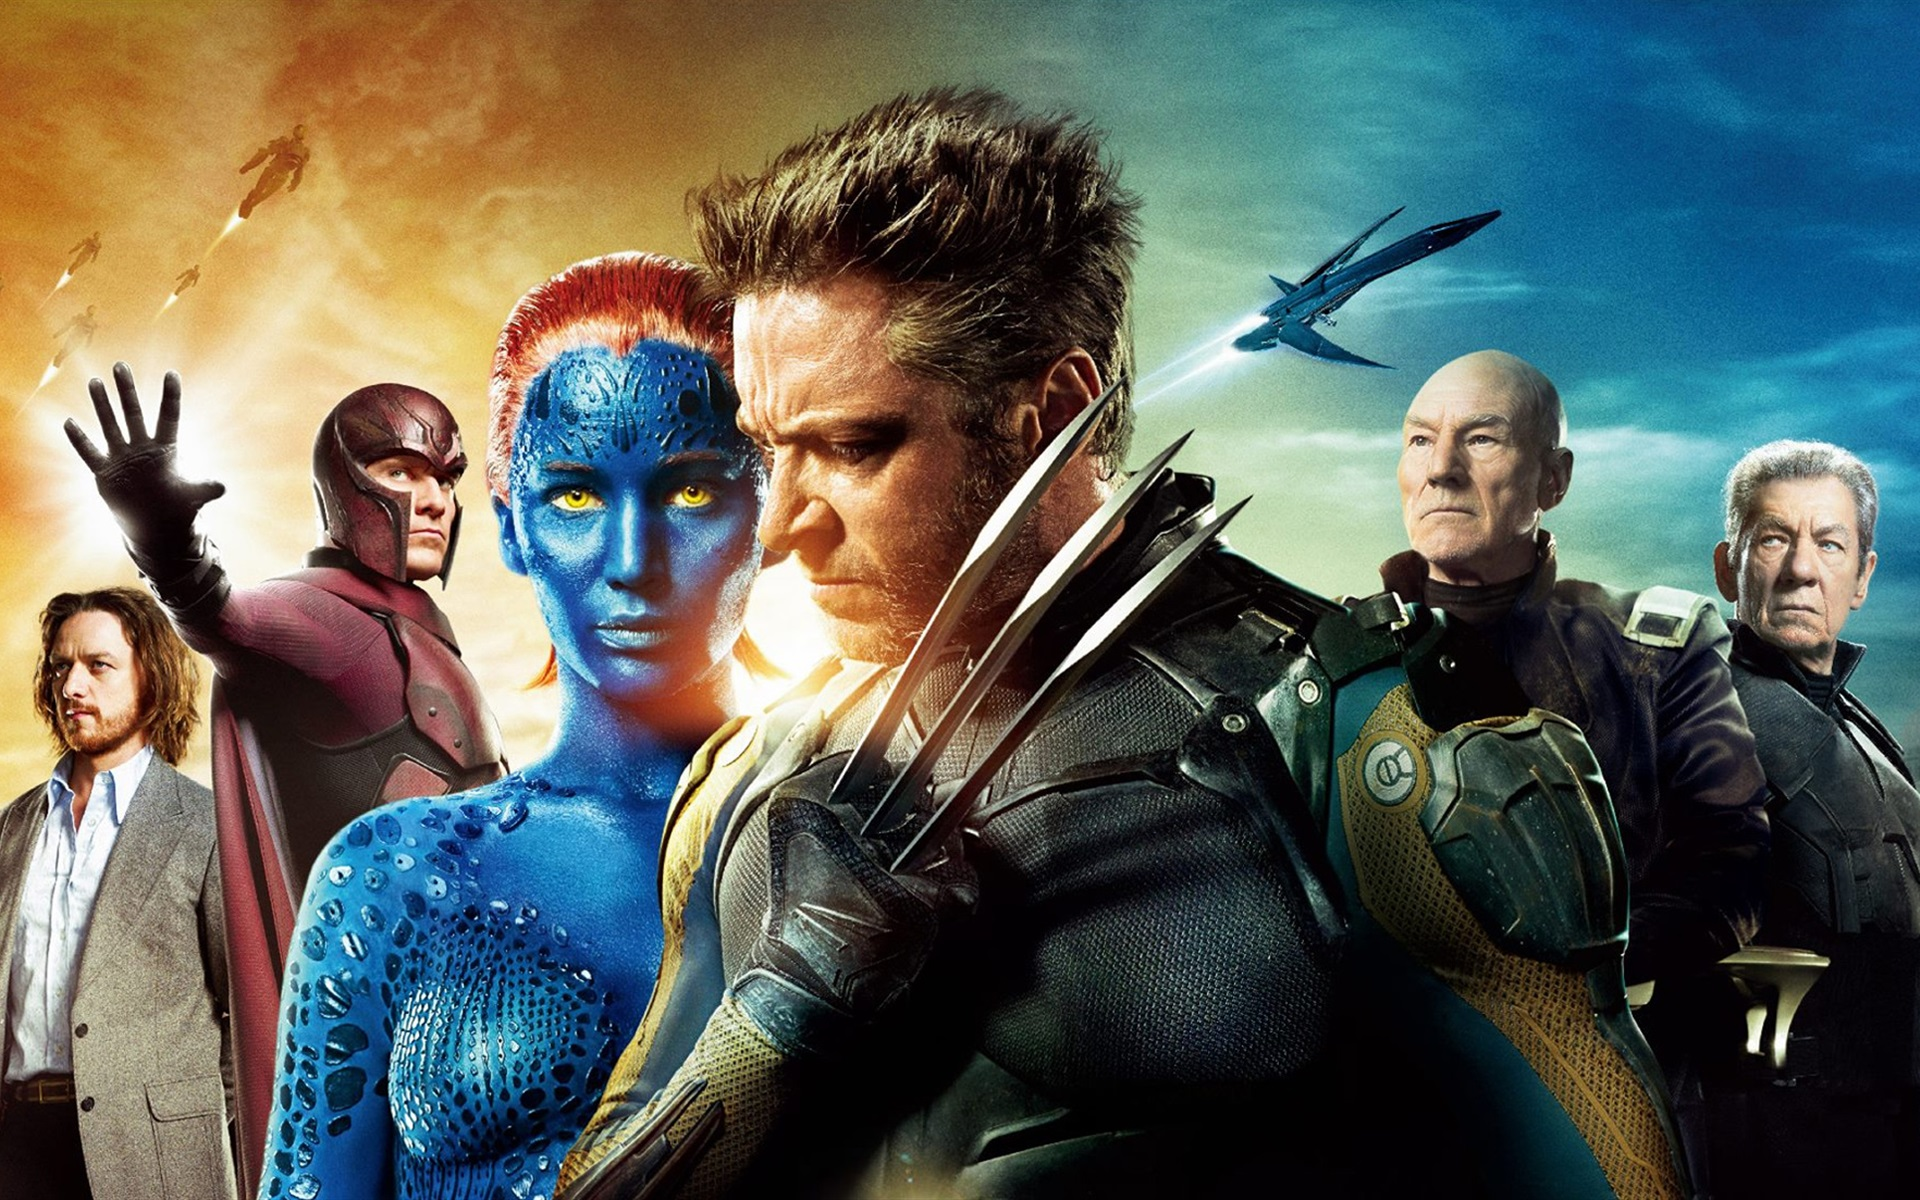 Wallpaper X Men Days Of Future Past 2014 1920x1200 Hd Picture Image